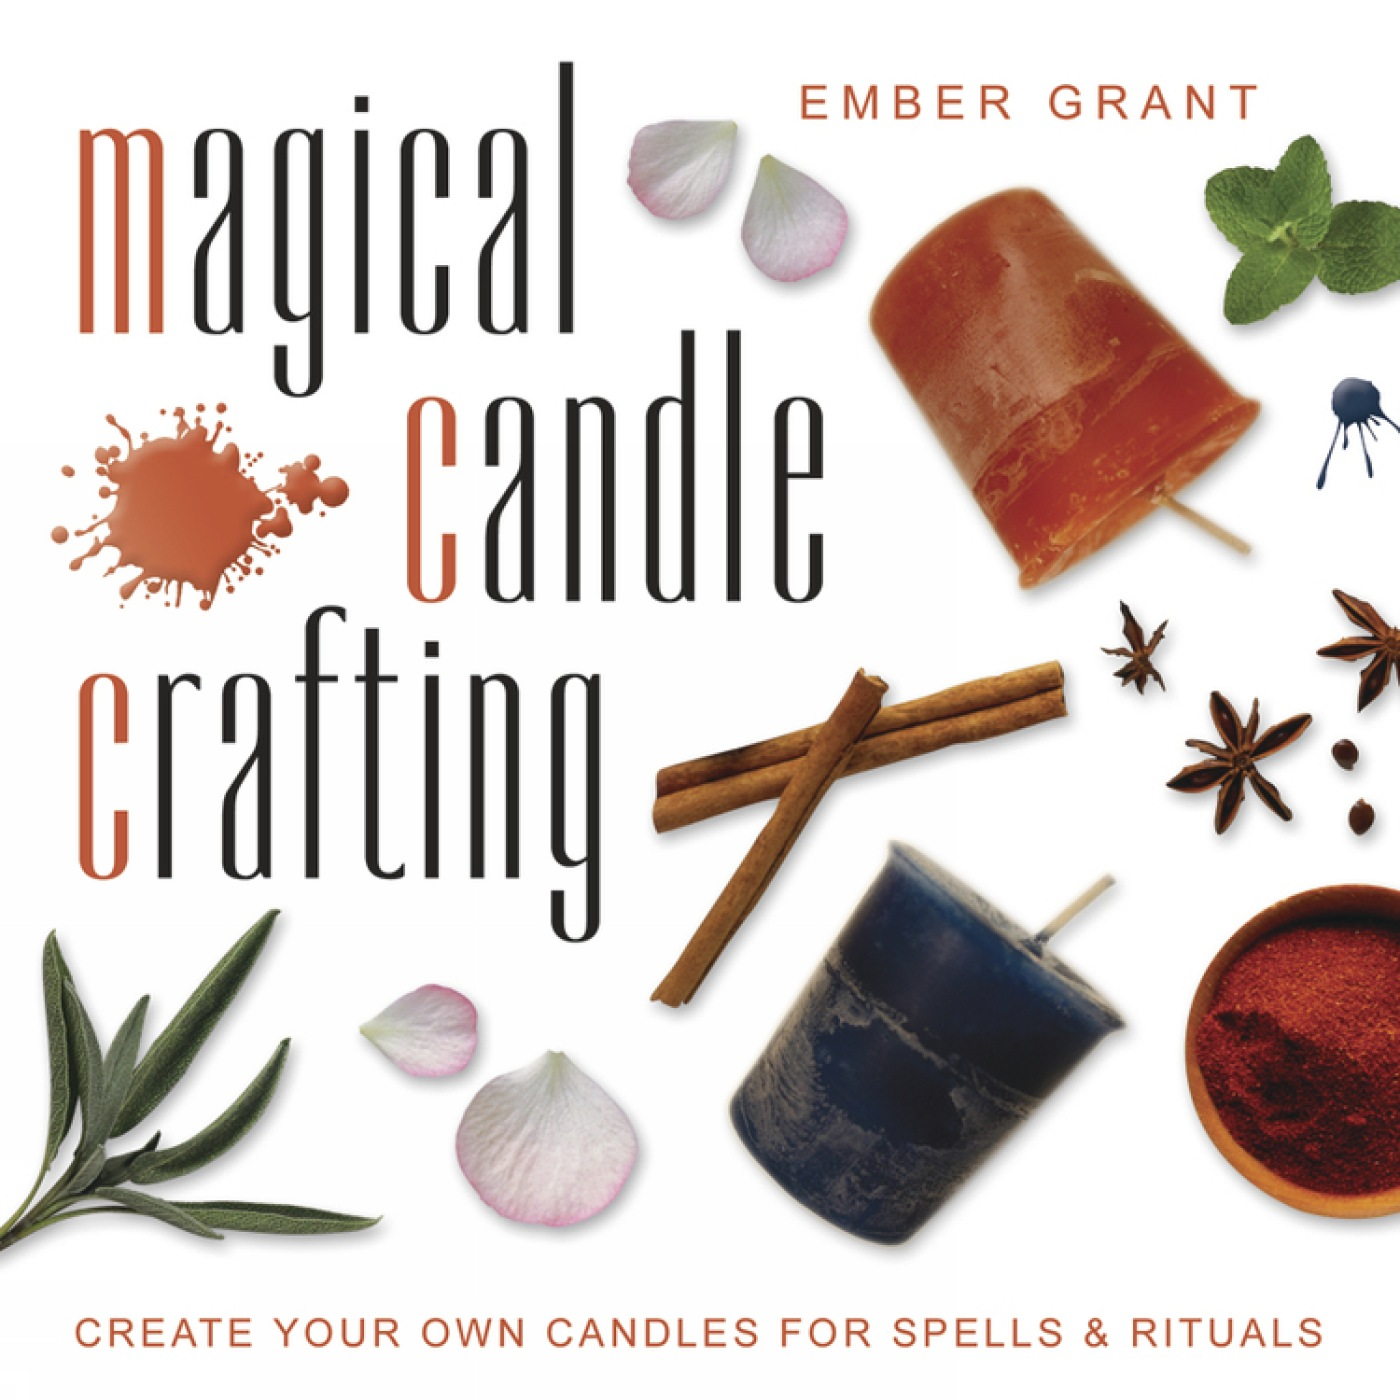 Magical Candle Crafting Create Your Own Candles for Spells & Rituals